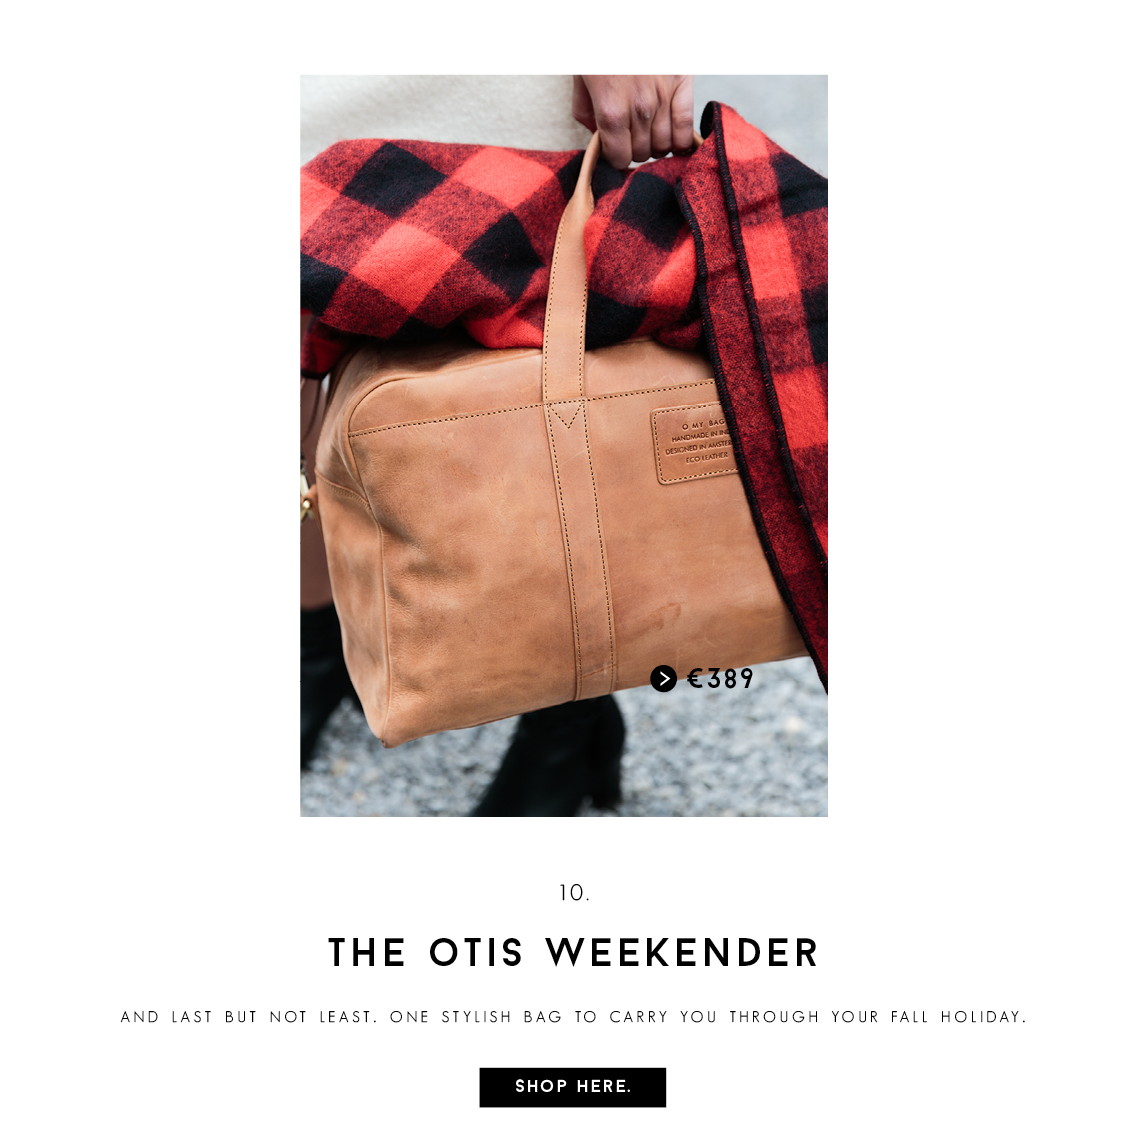 http://shoplily.be/collections/fall-getaway/products/otis-weekender-camel